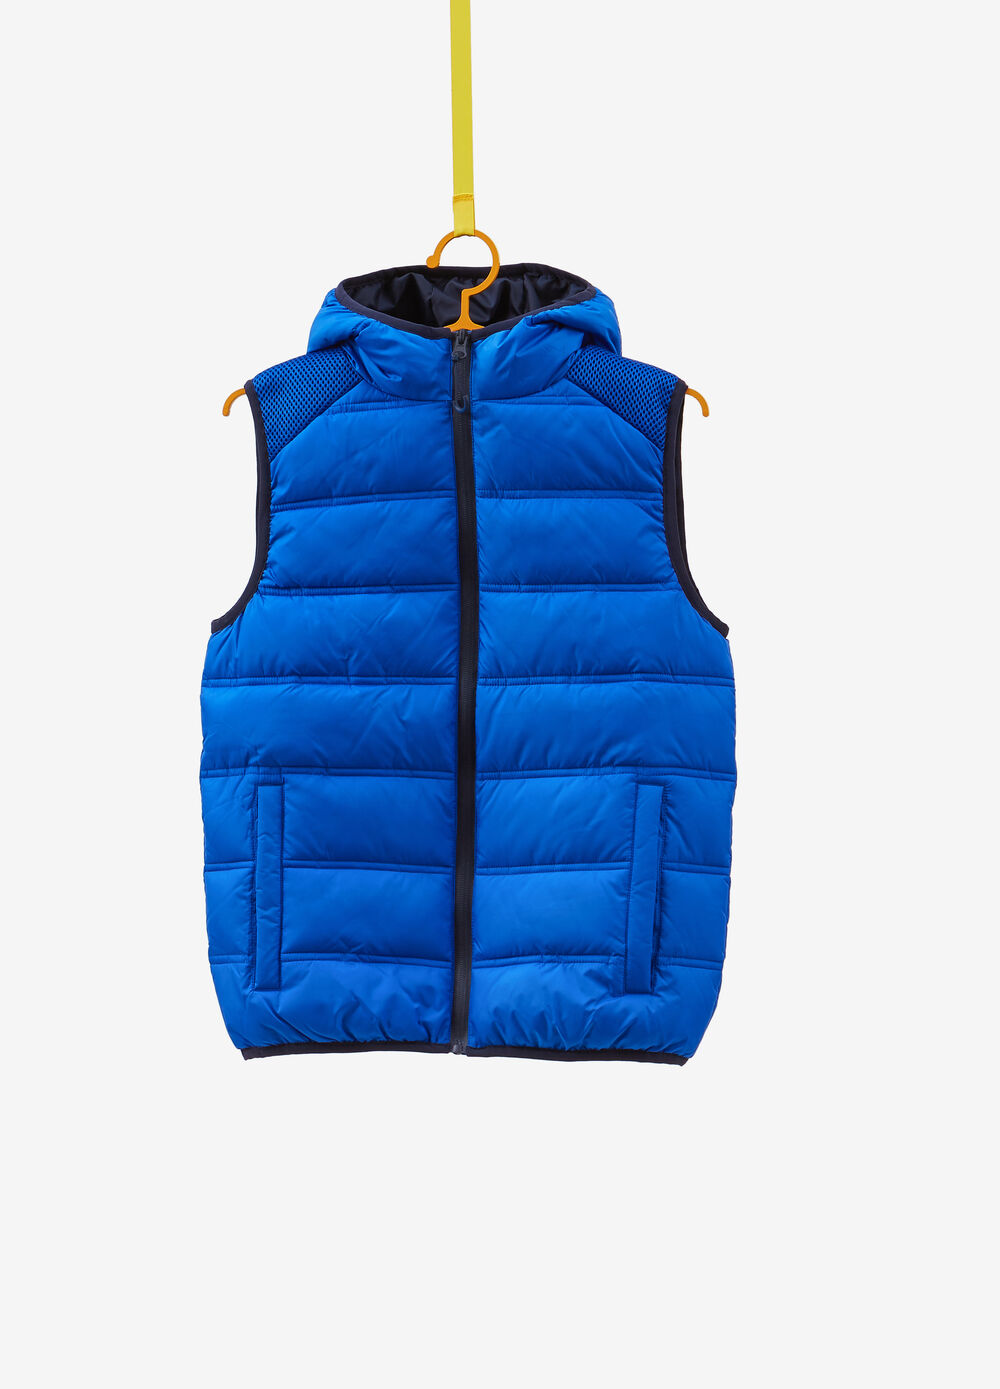 Gilet with trim and mesh inserts